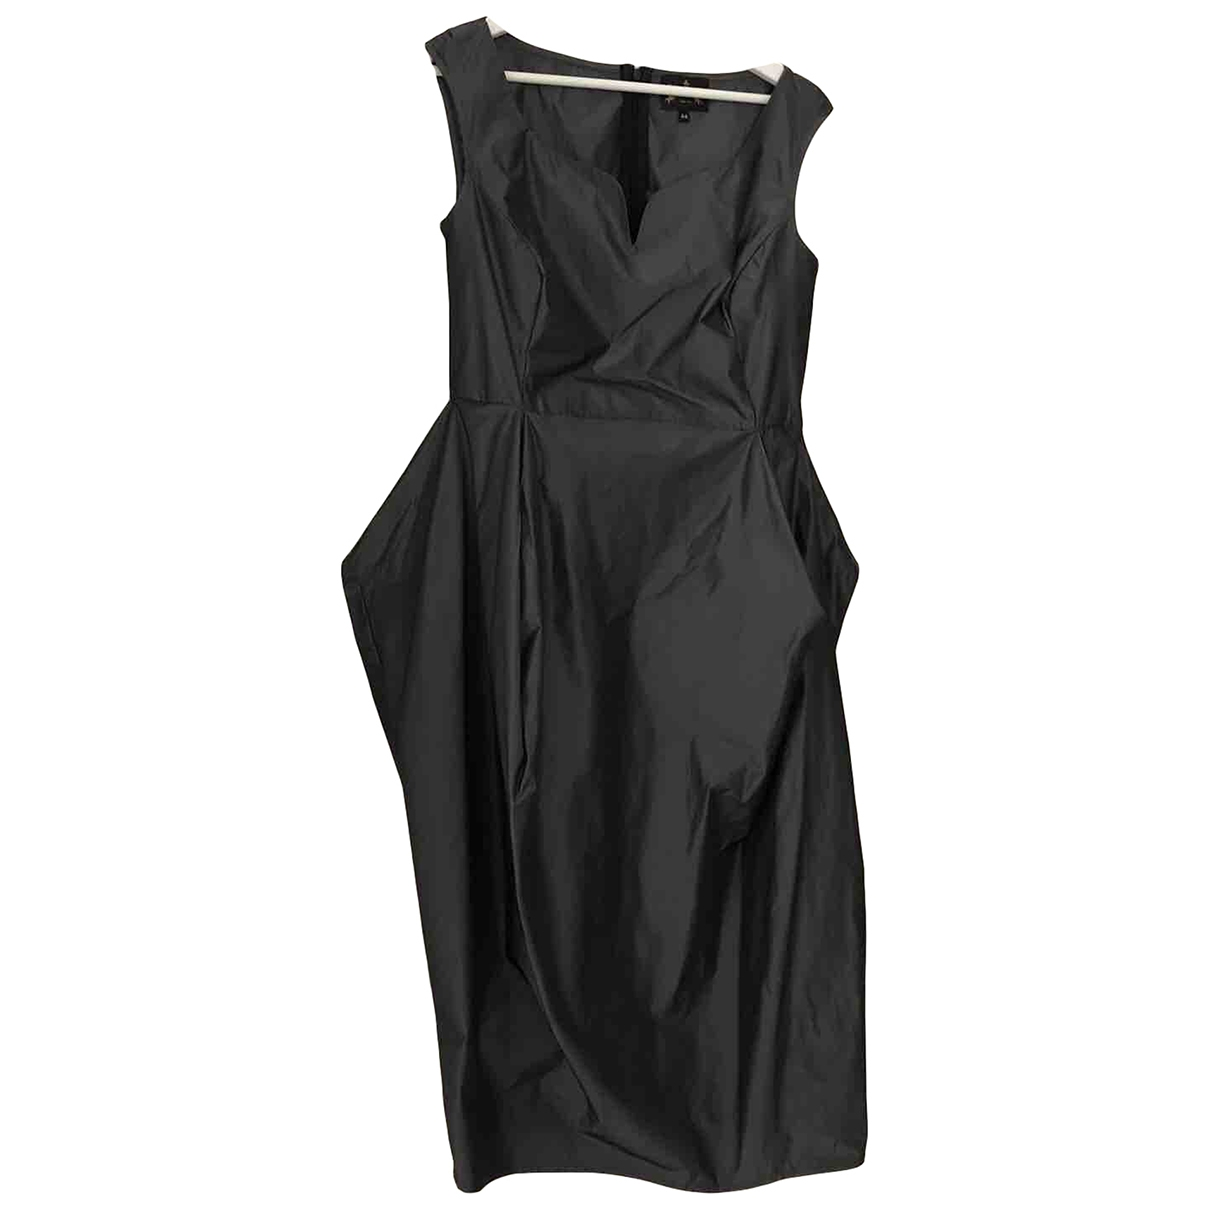 Vivienne Westwood Anglomania \N Anthracite dress for Women 44 IT